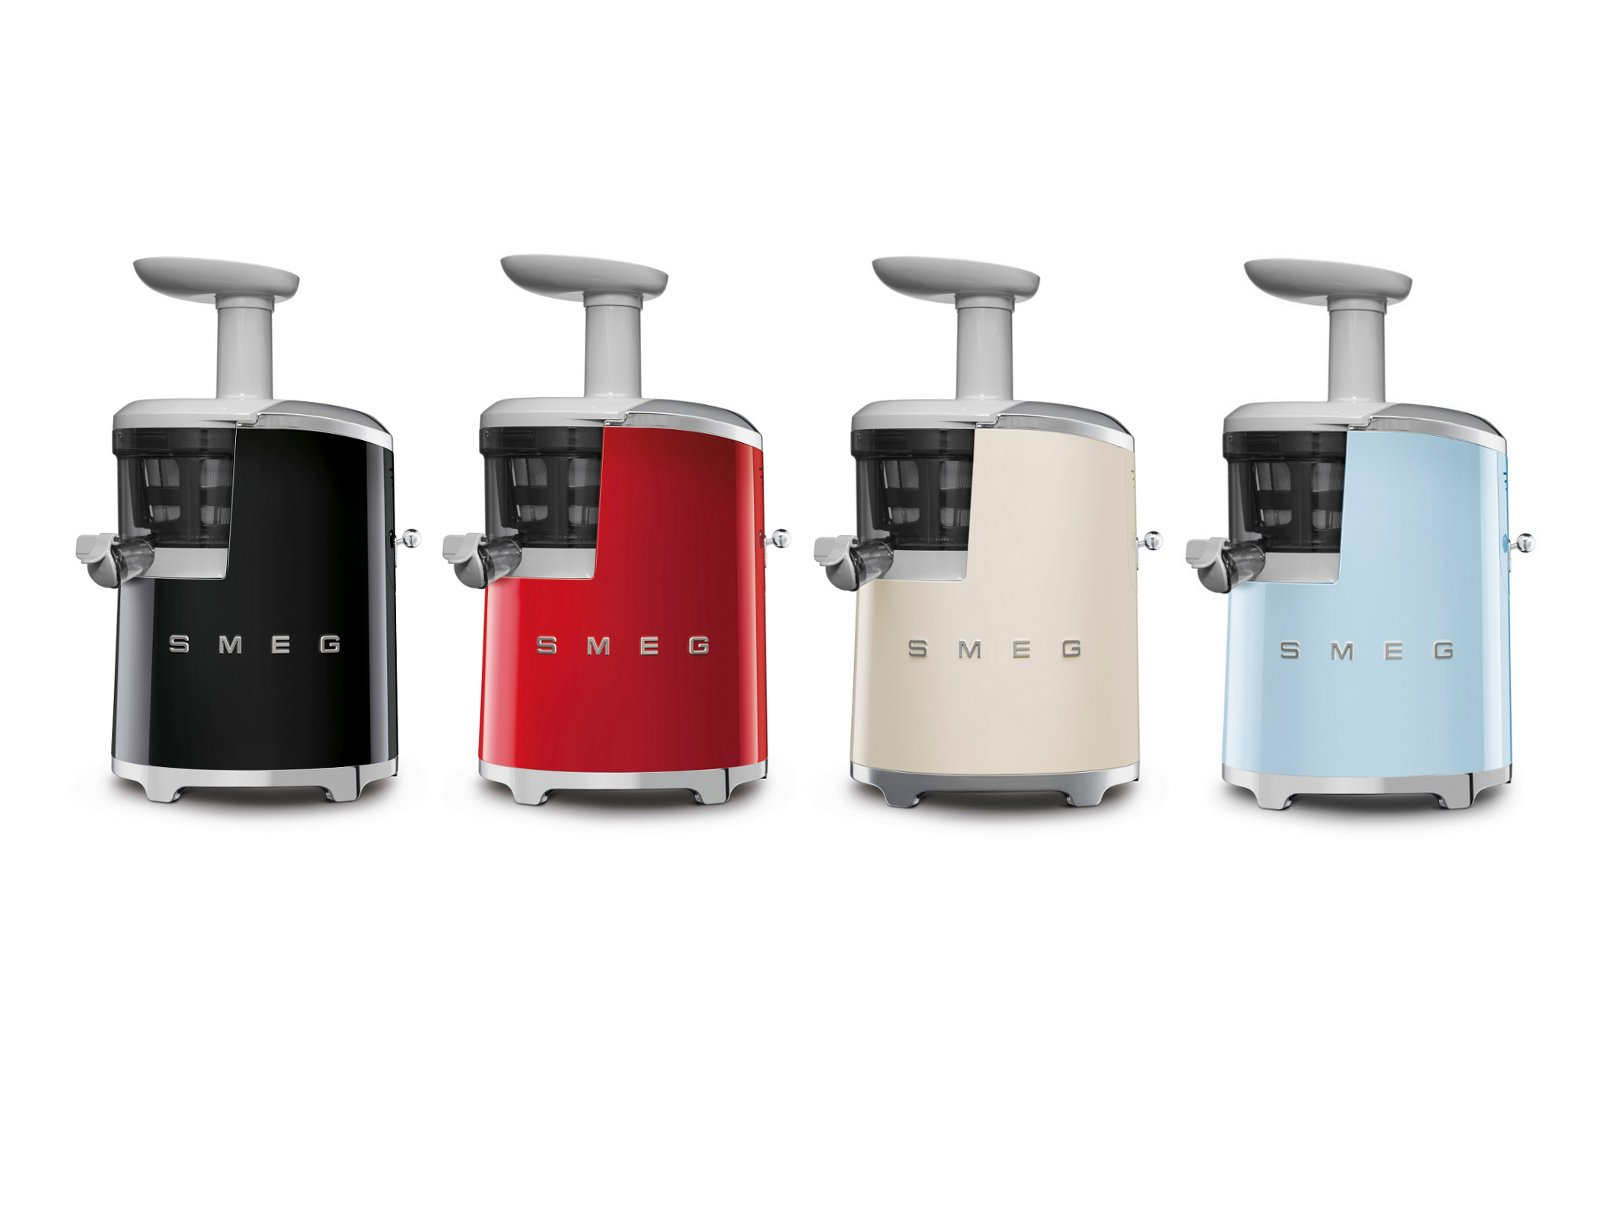 Sjf01 Slow Juicer Smeg 50 S Style Collection By Smeg